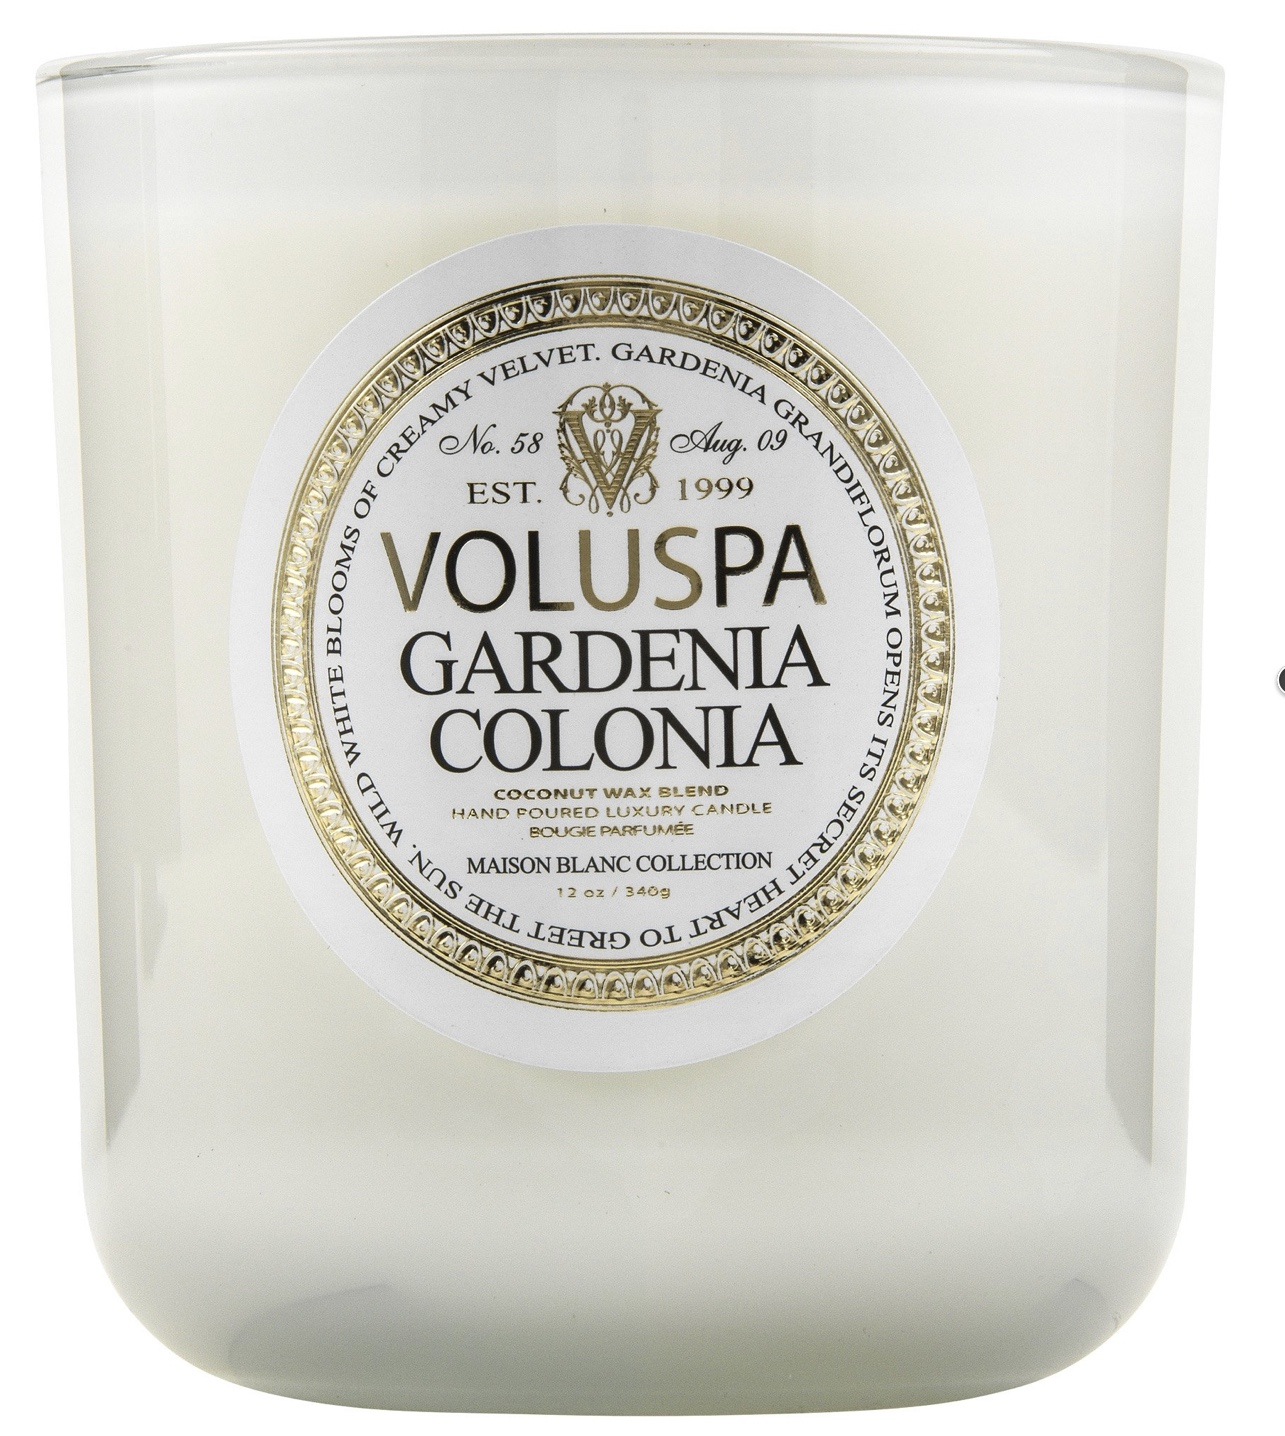 Voluspa Gardenia Colonia Candle